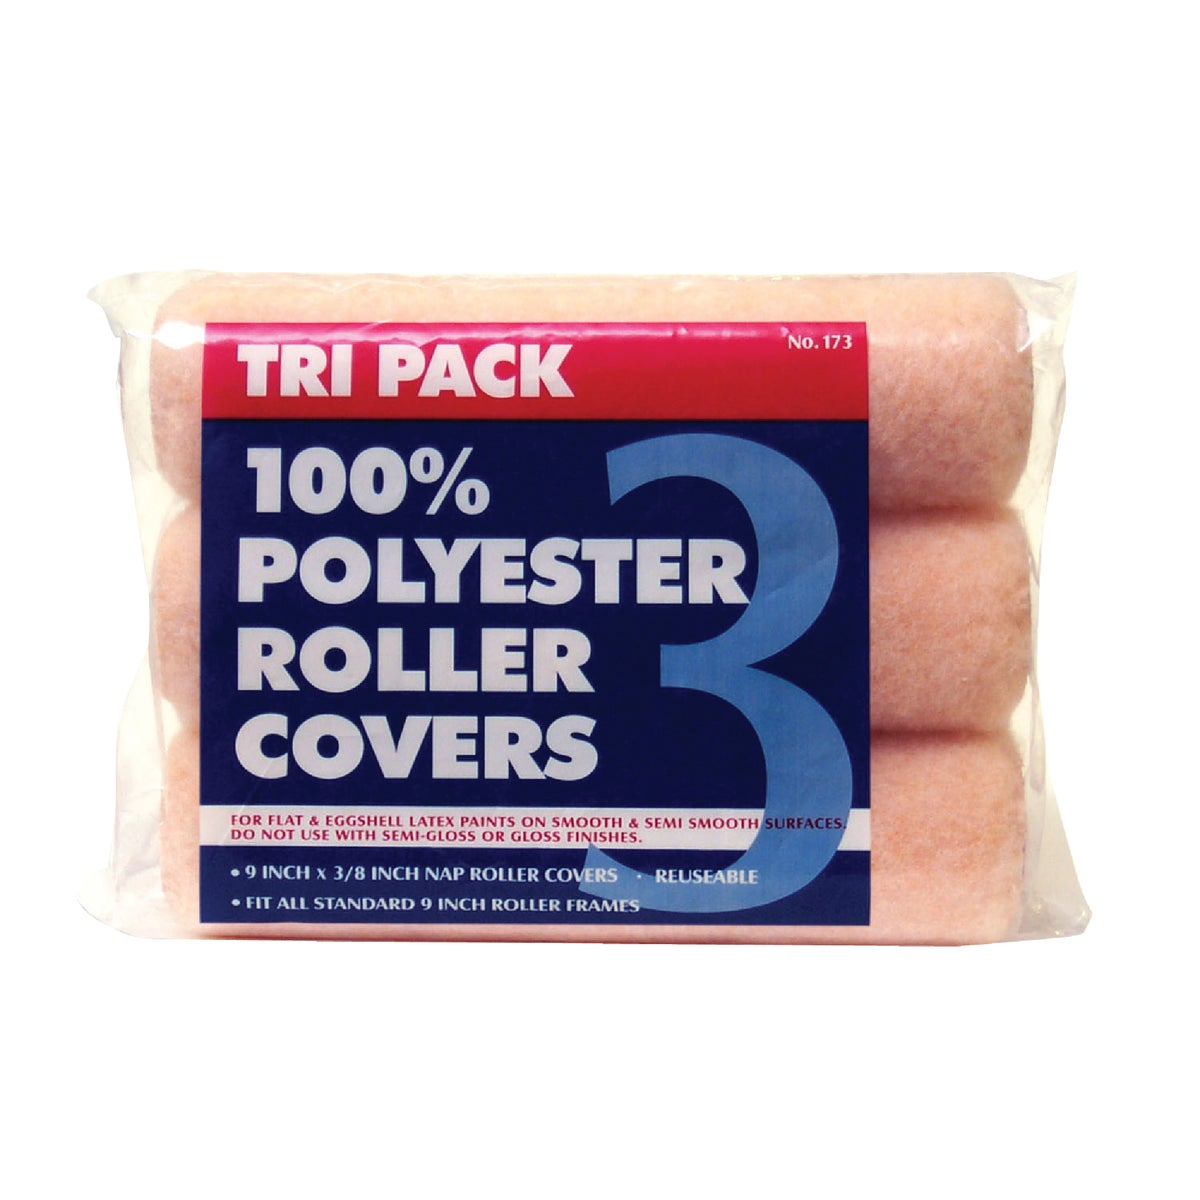 3PK 9X3/8 ROLLER COVERS - 1730 by Premier Paint Roller